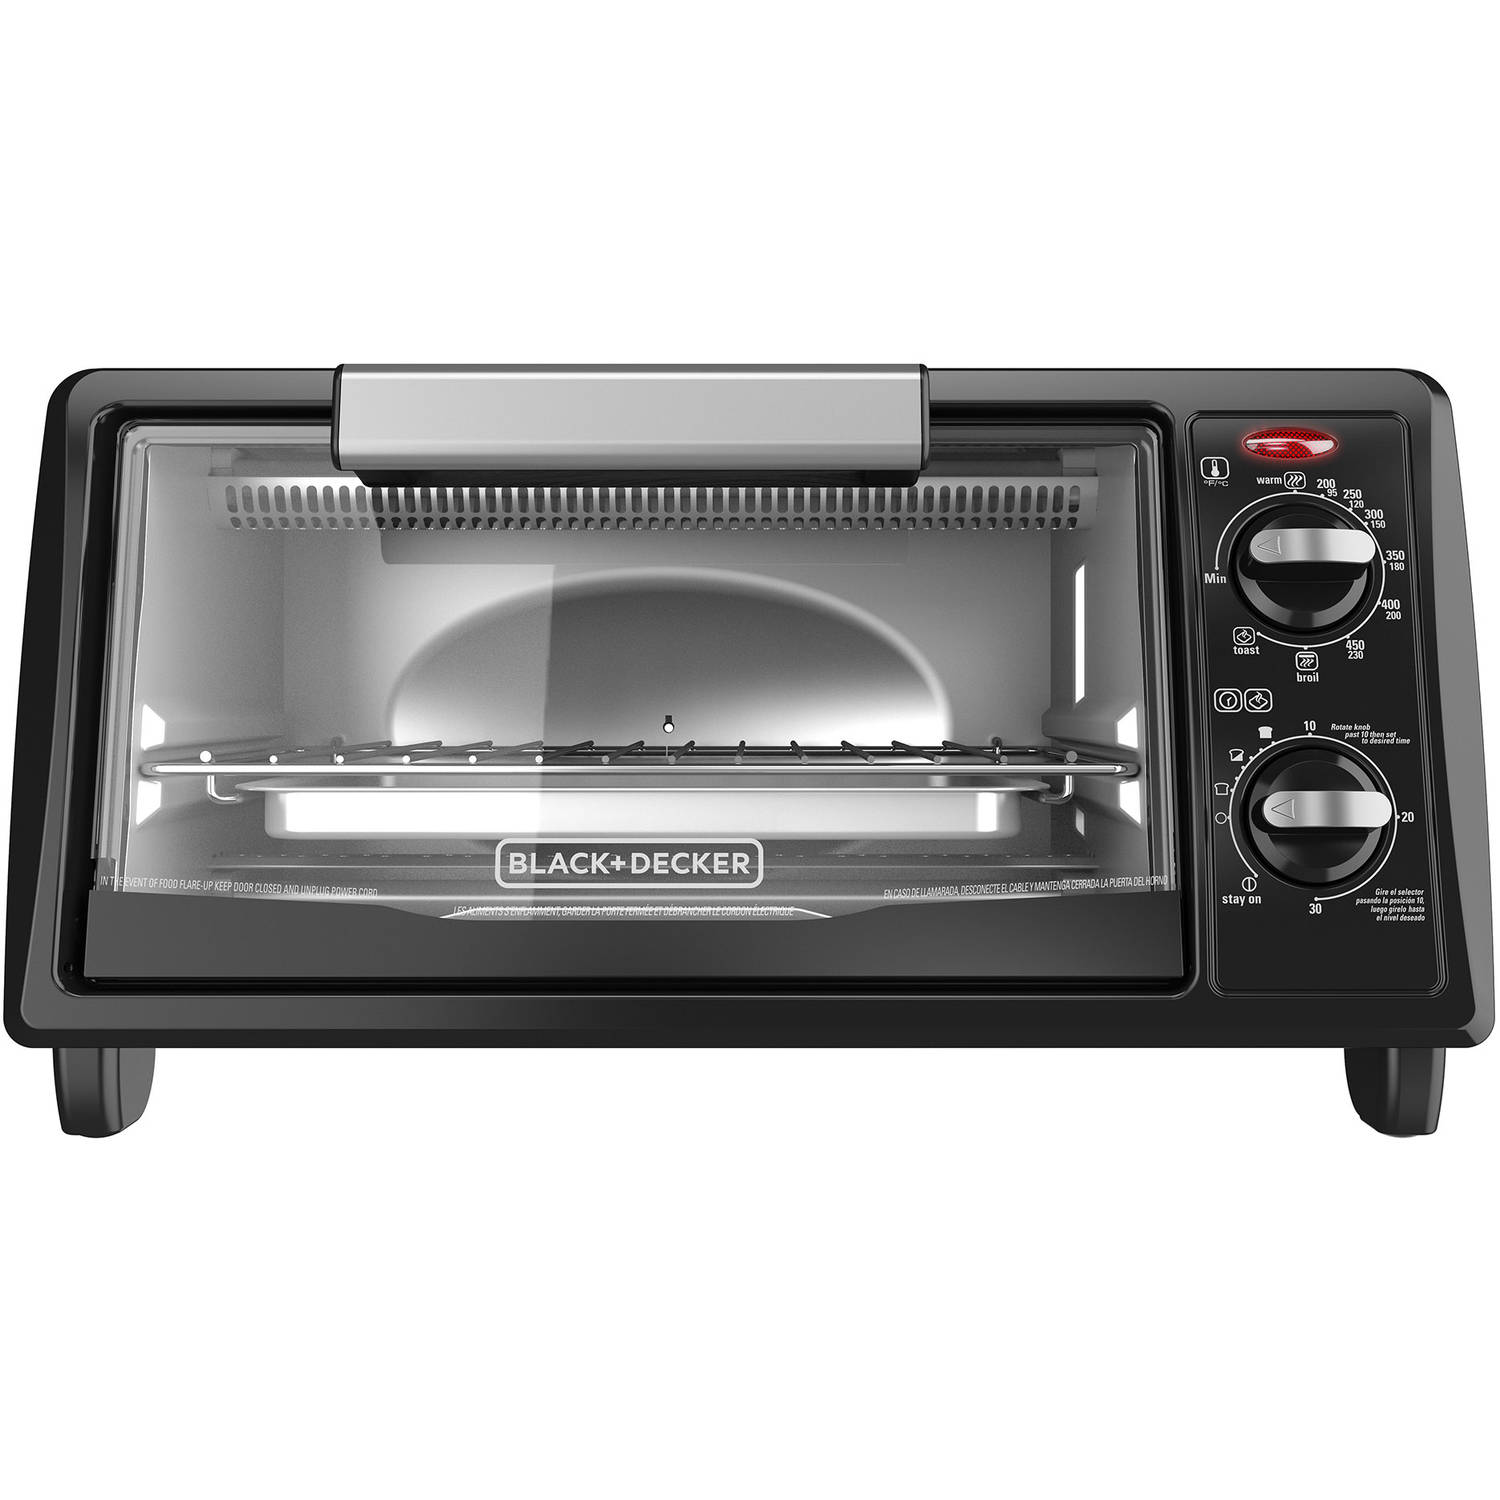 Black & Decker 4-Slice Toaster Oven, Black